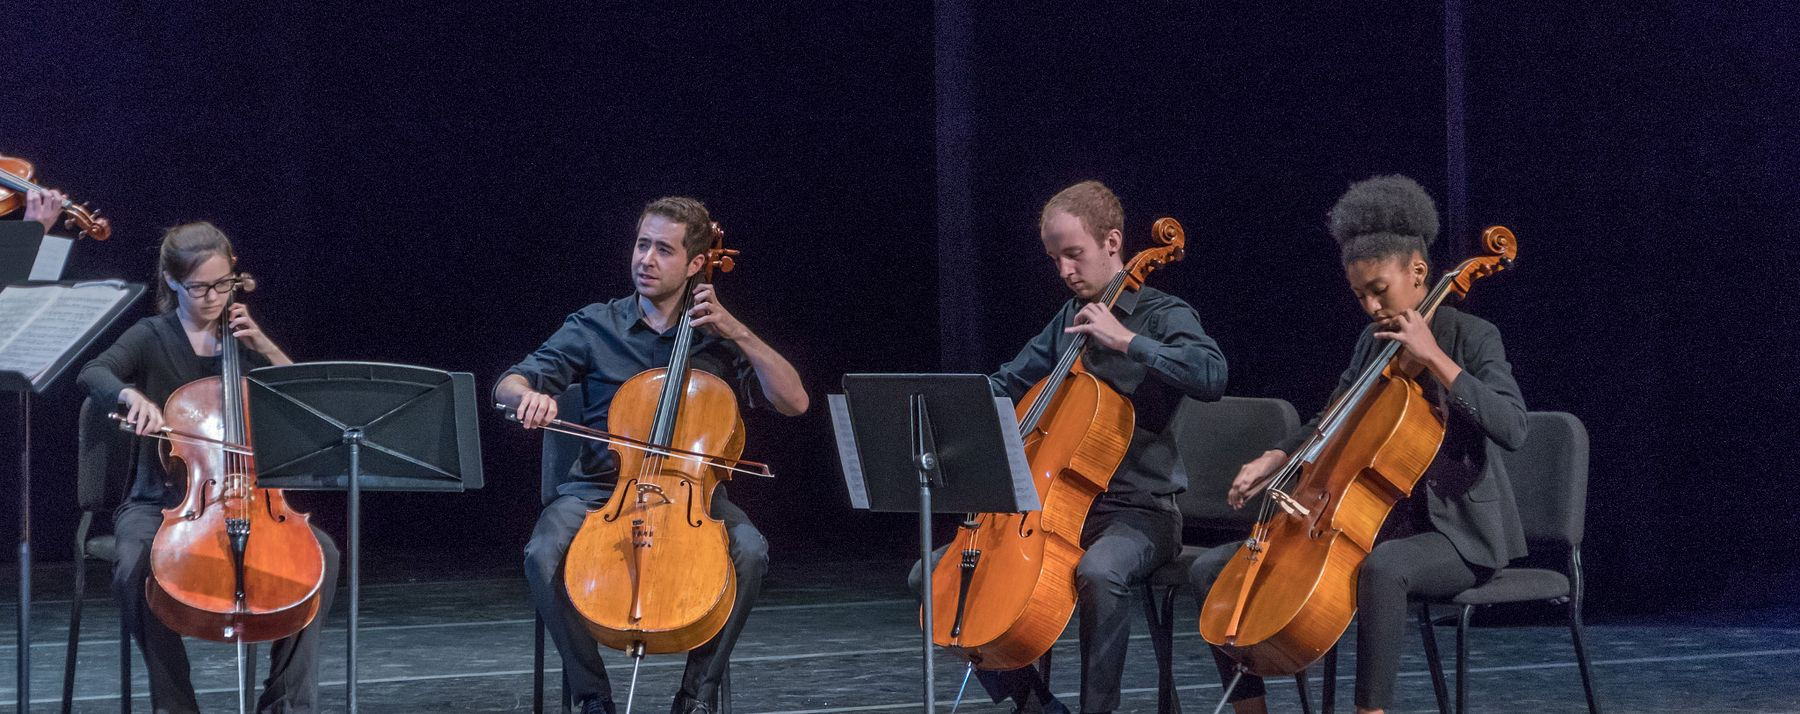 4 cellists